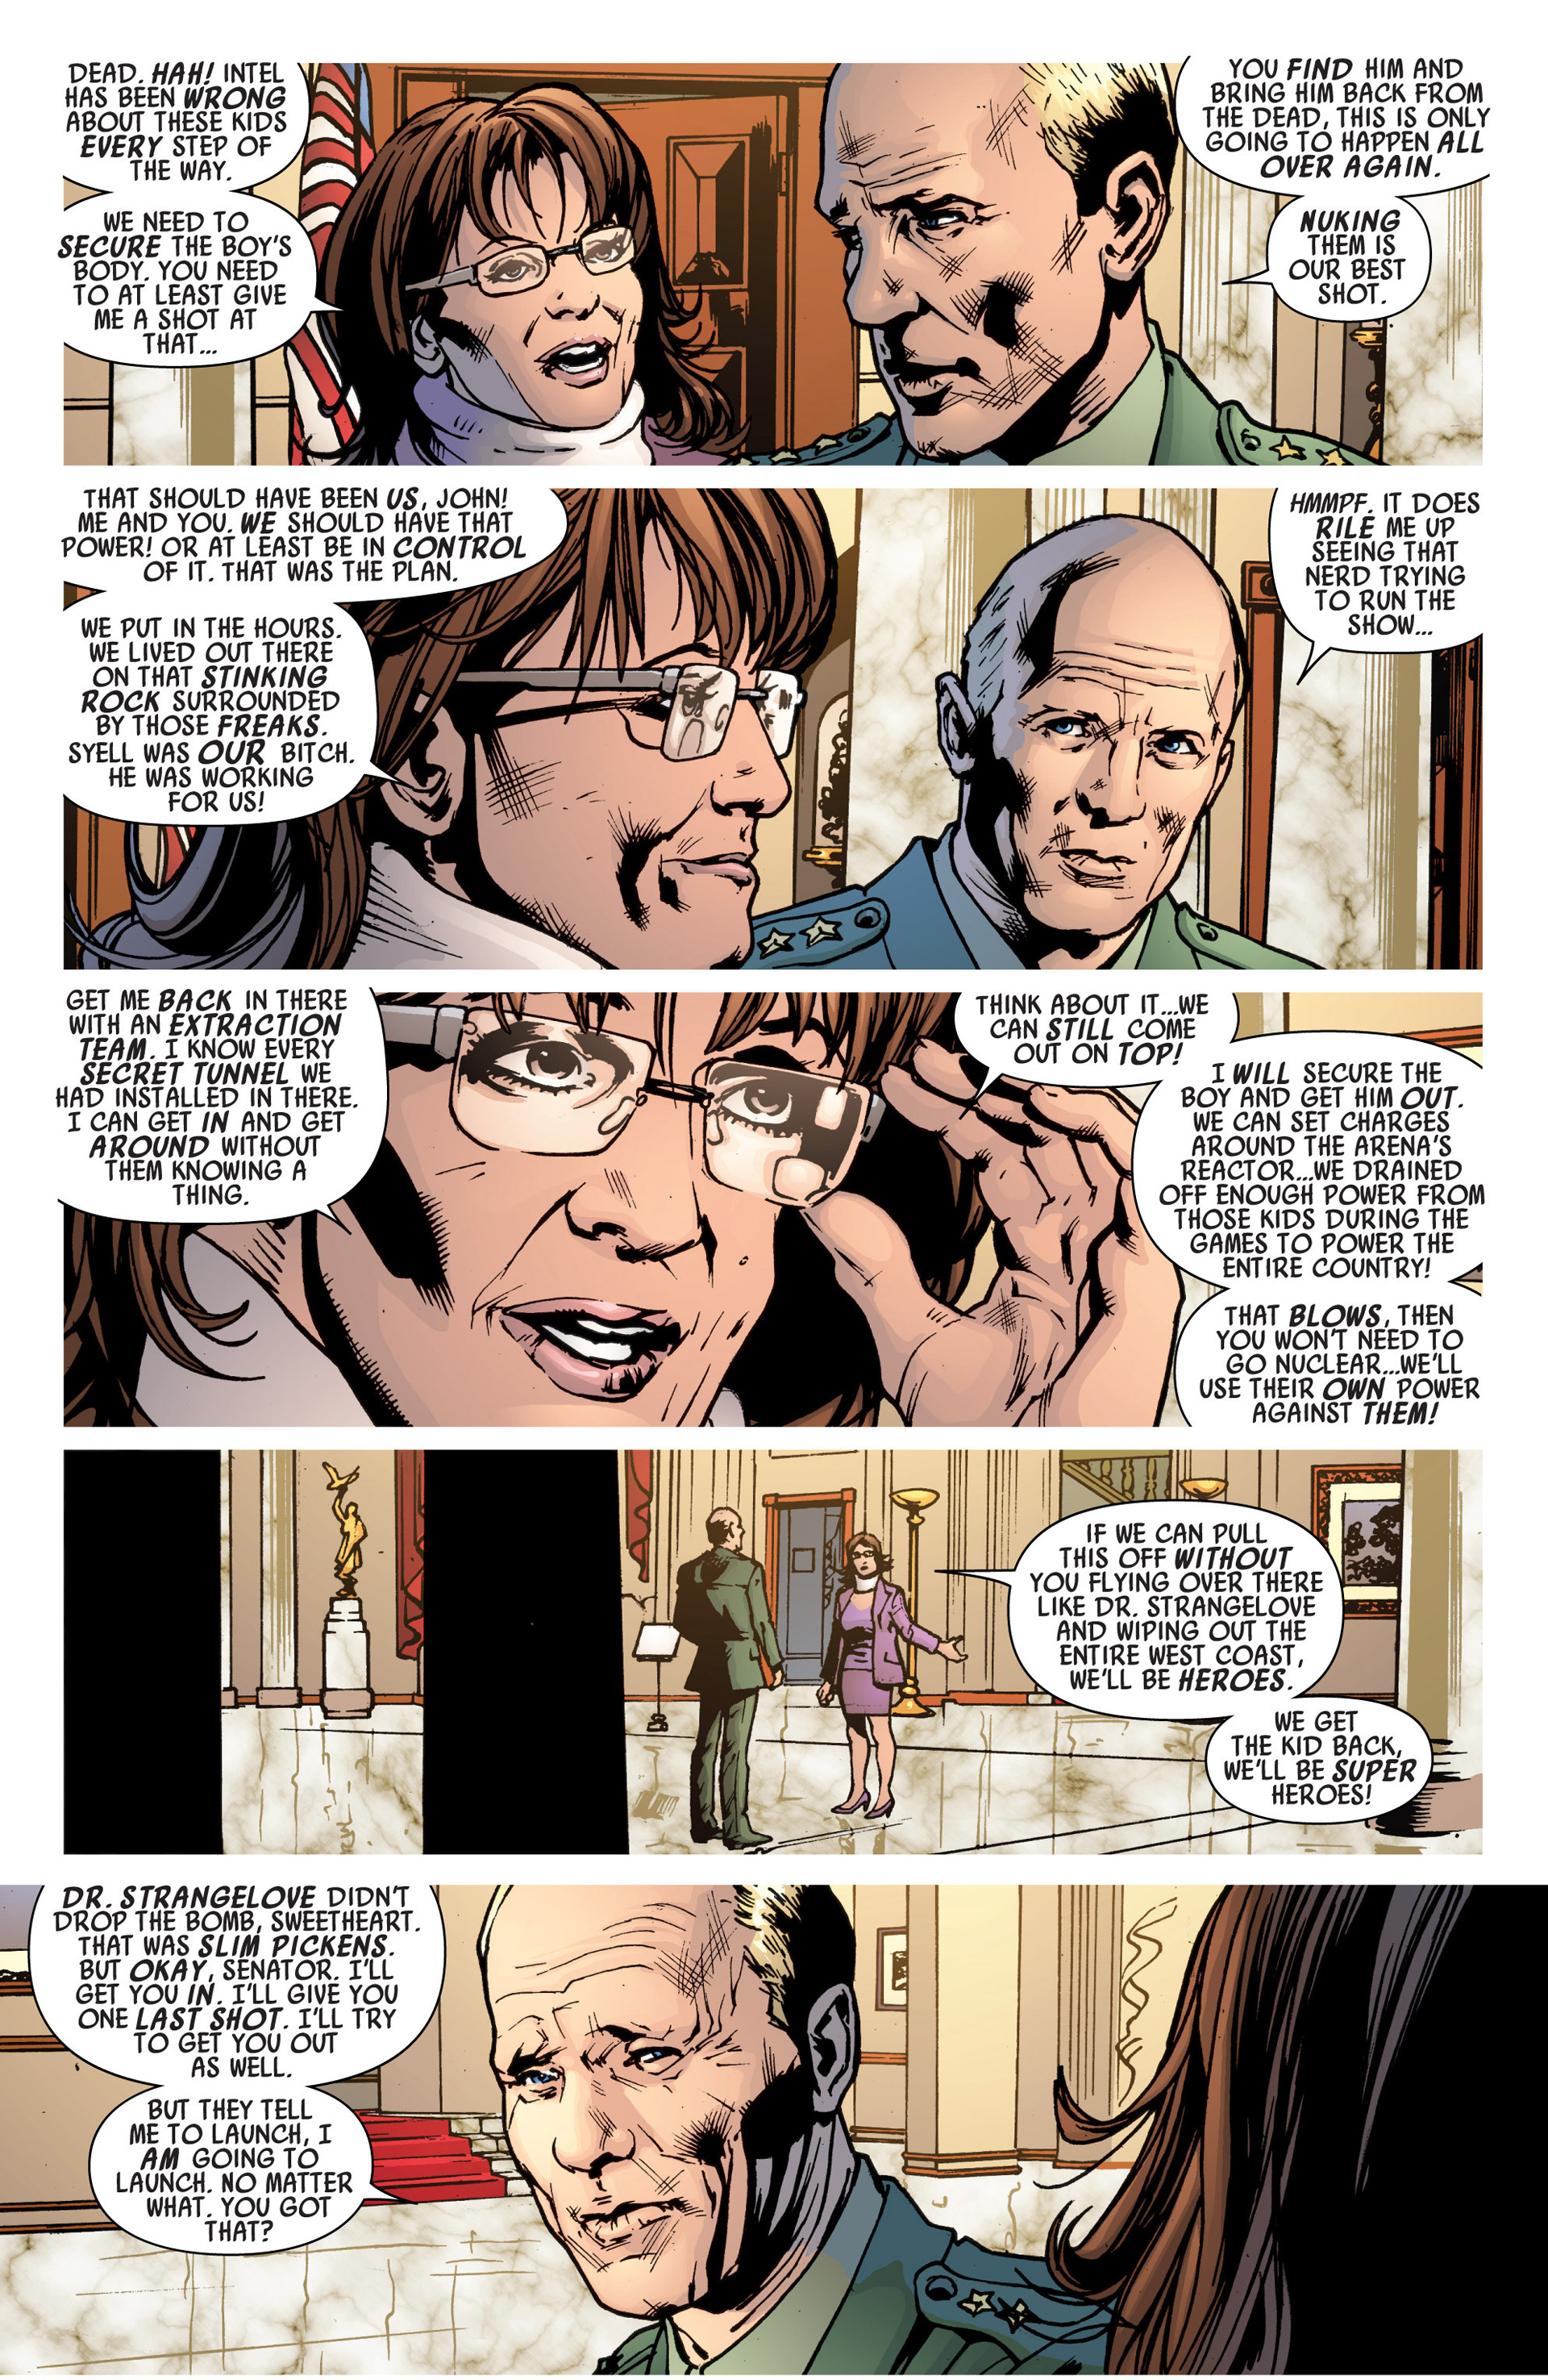 Read online America's Got Powers comic -  Issue #6 - 9